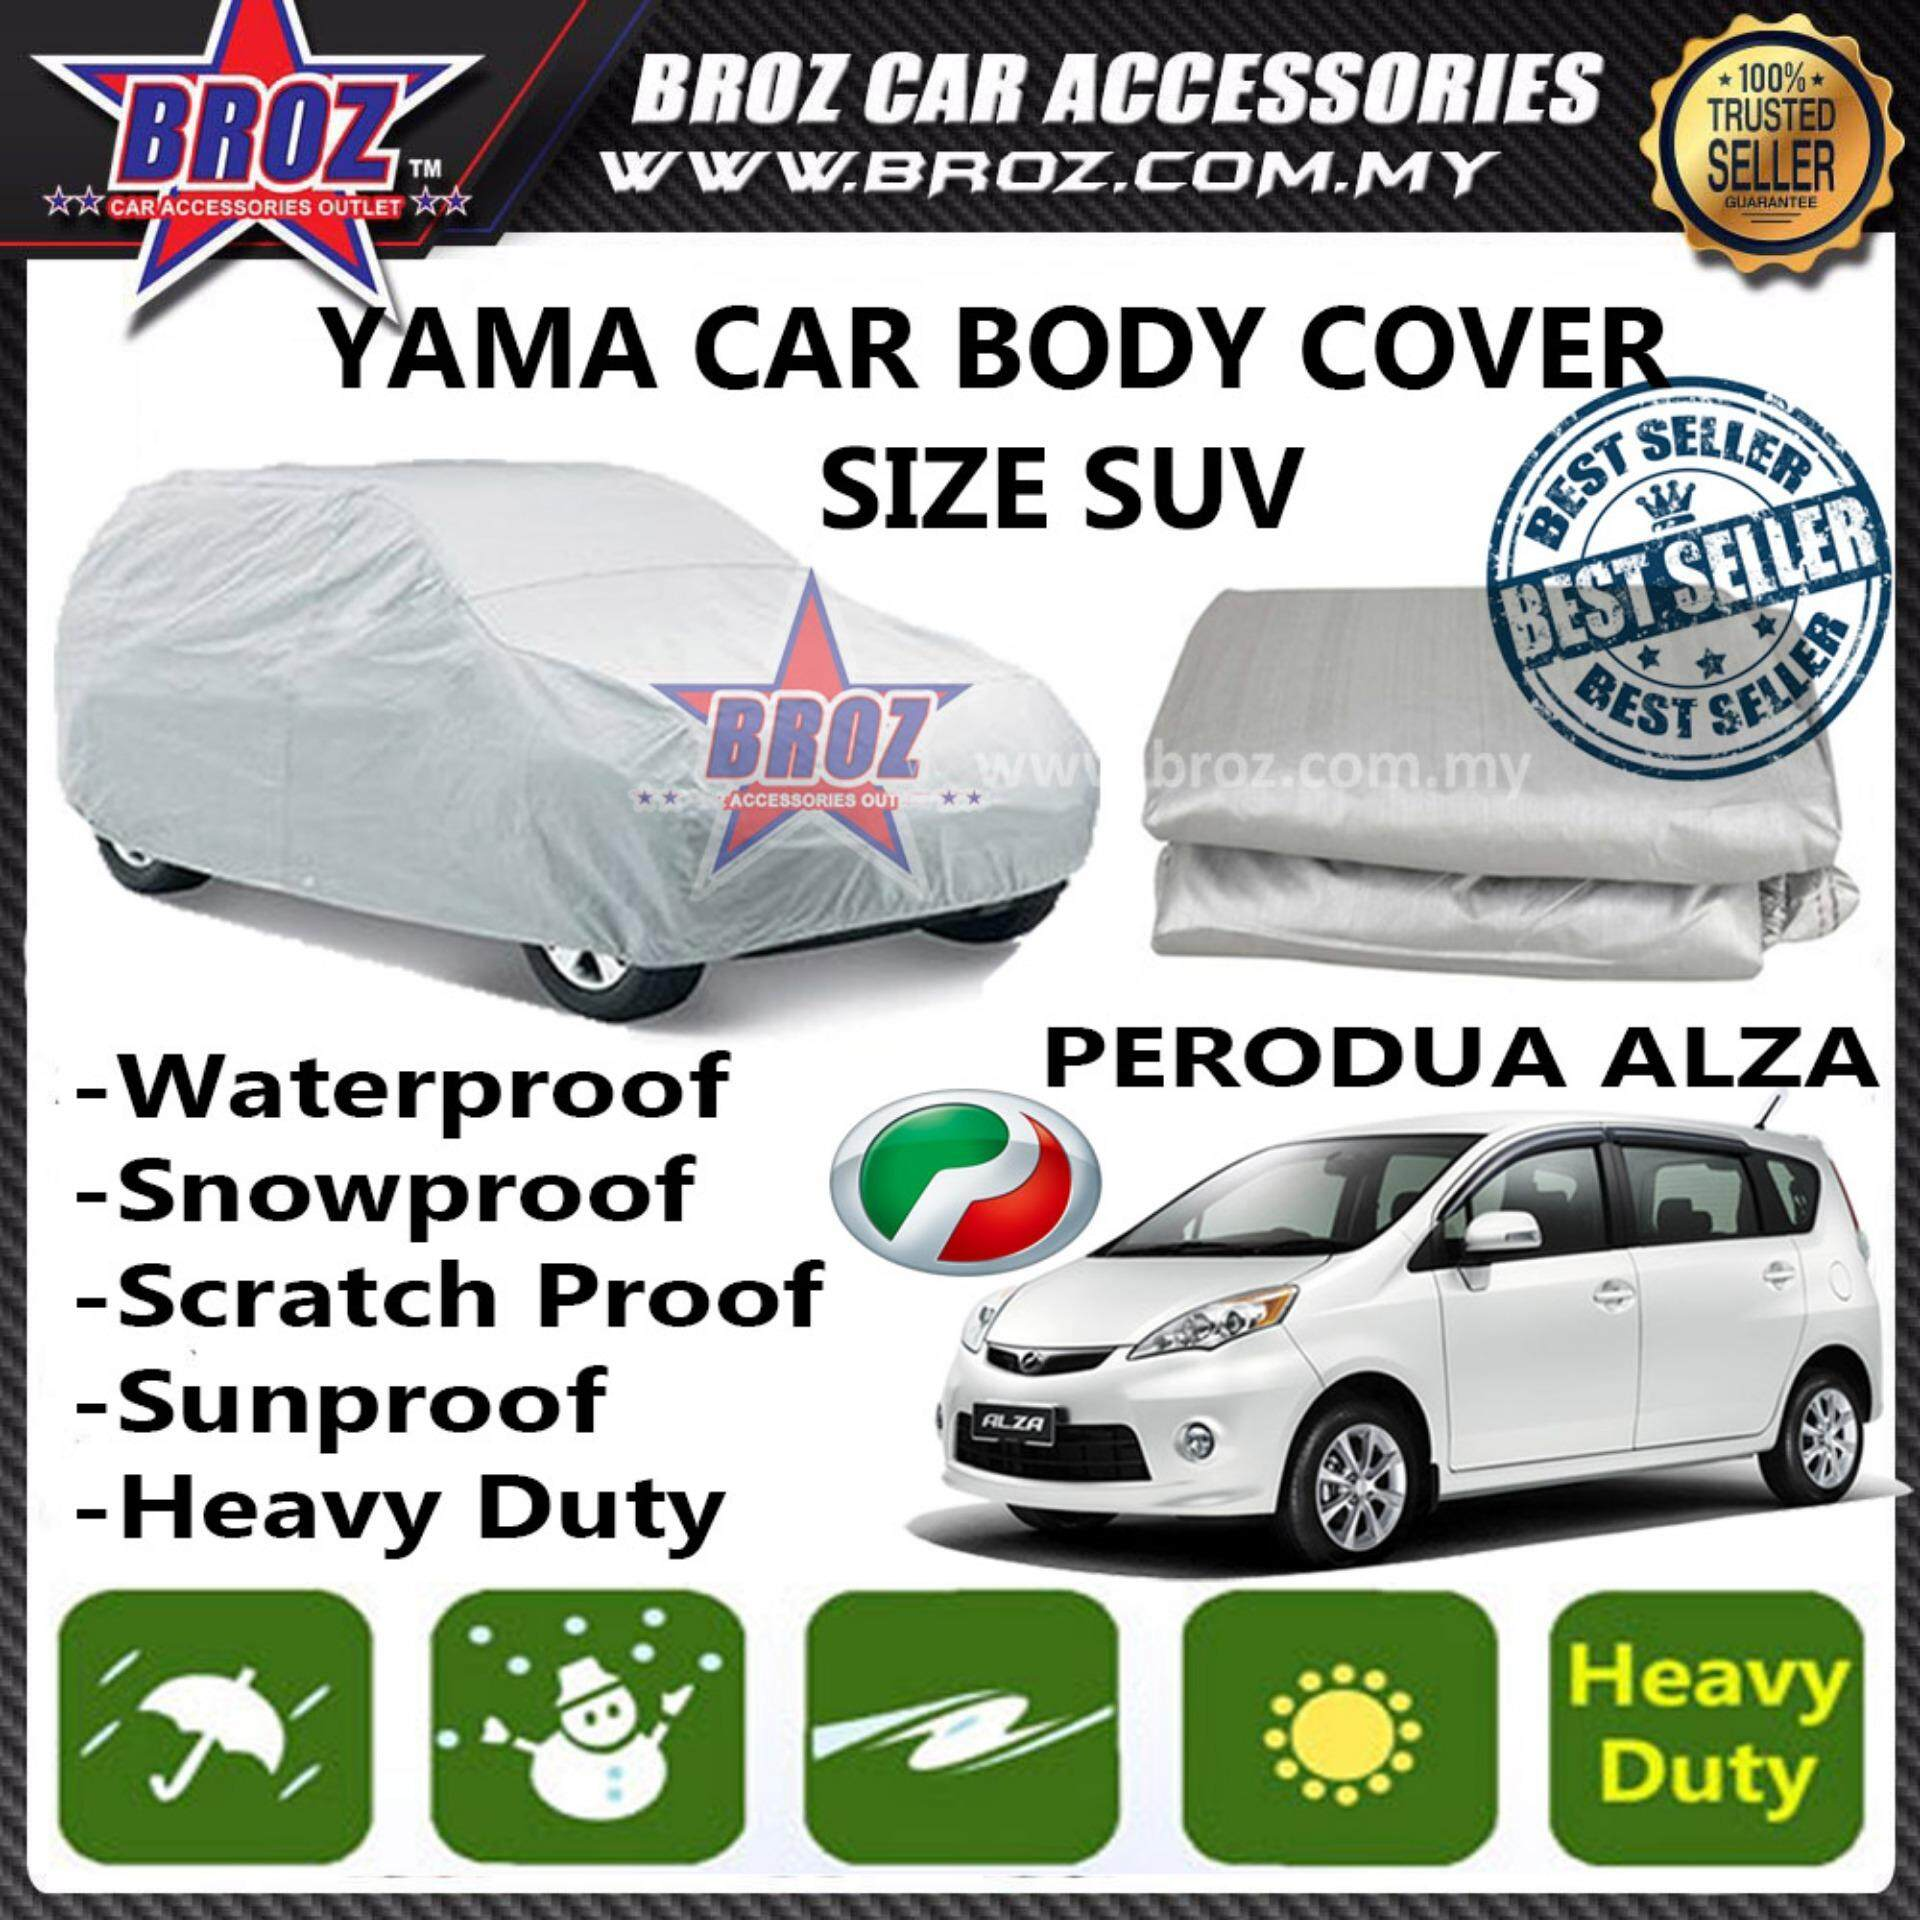 Exterior Automotive Accessories for the Best Price in Malaysia